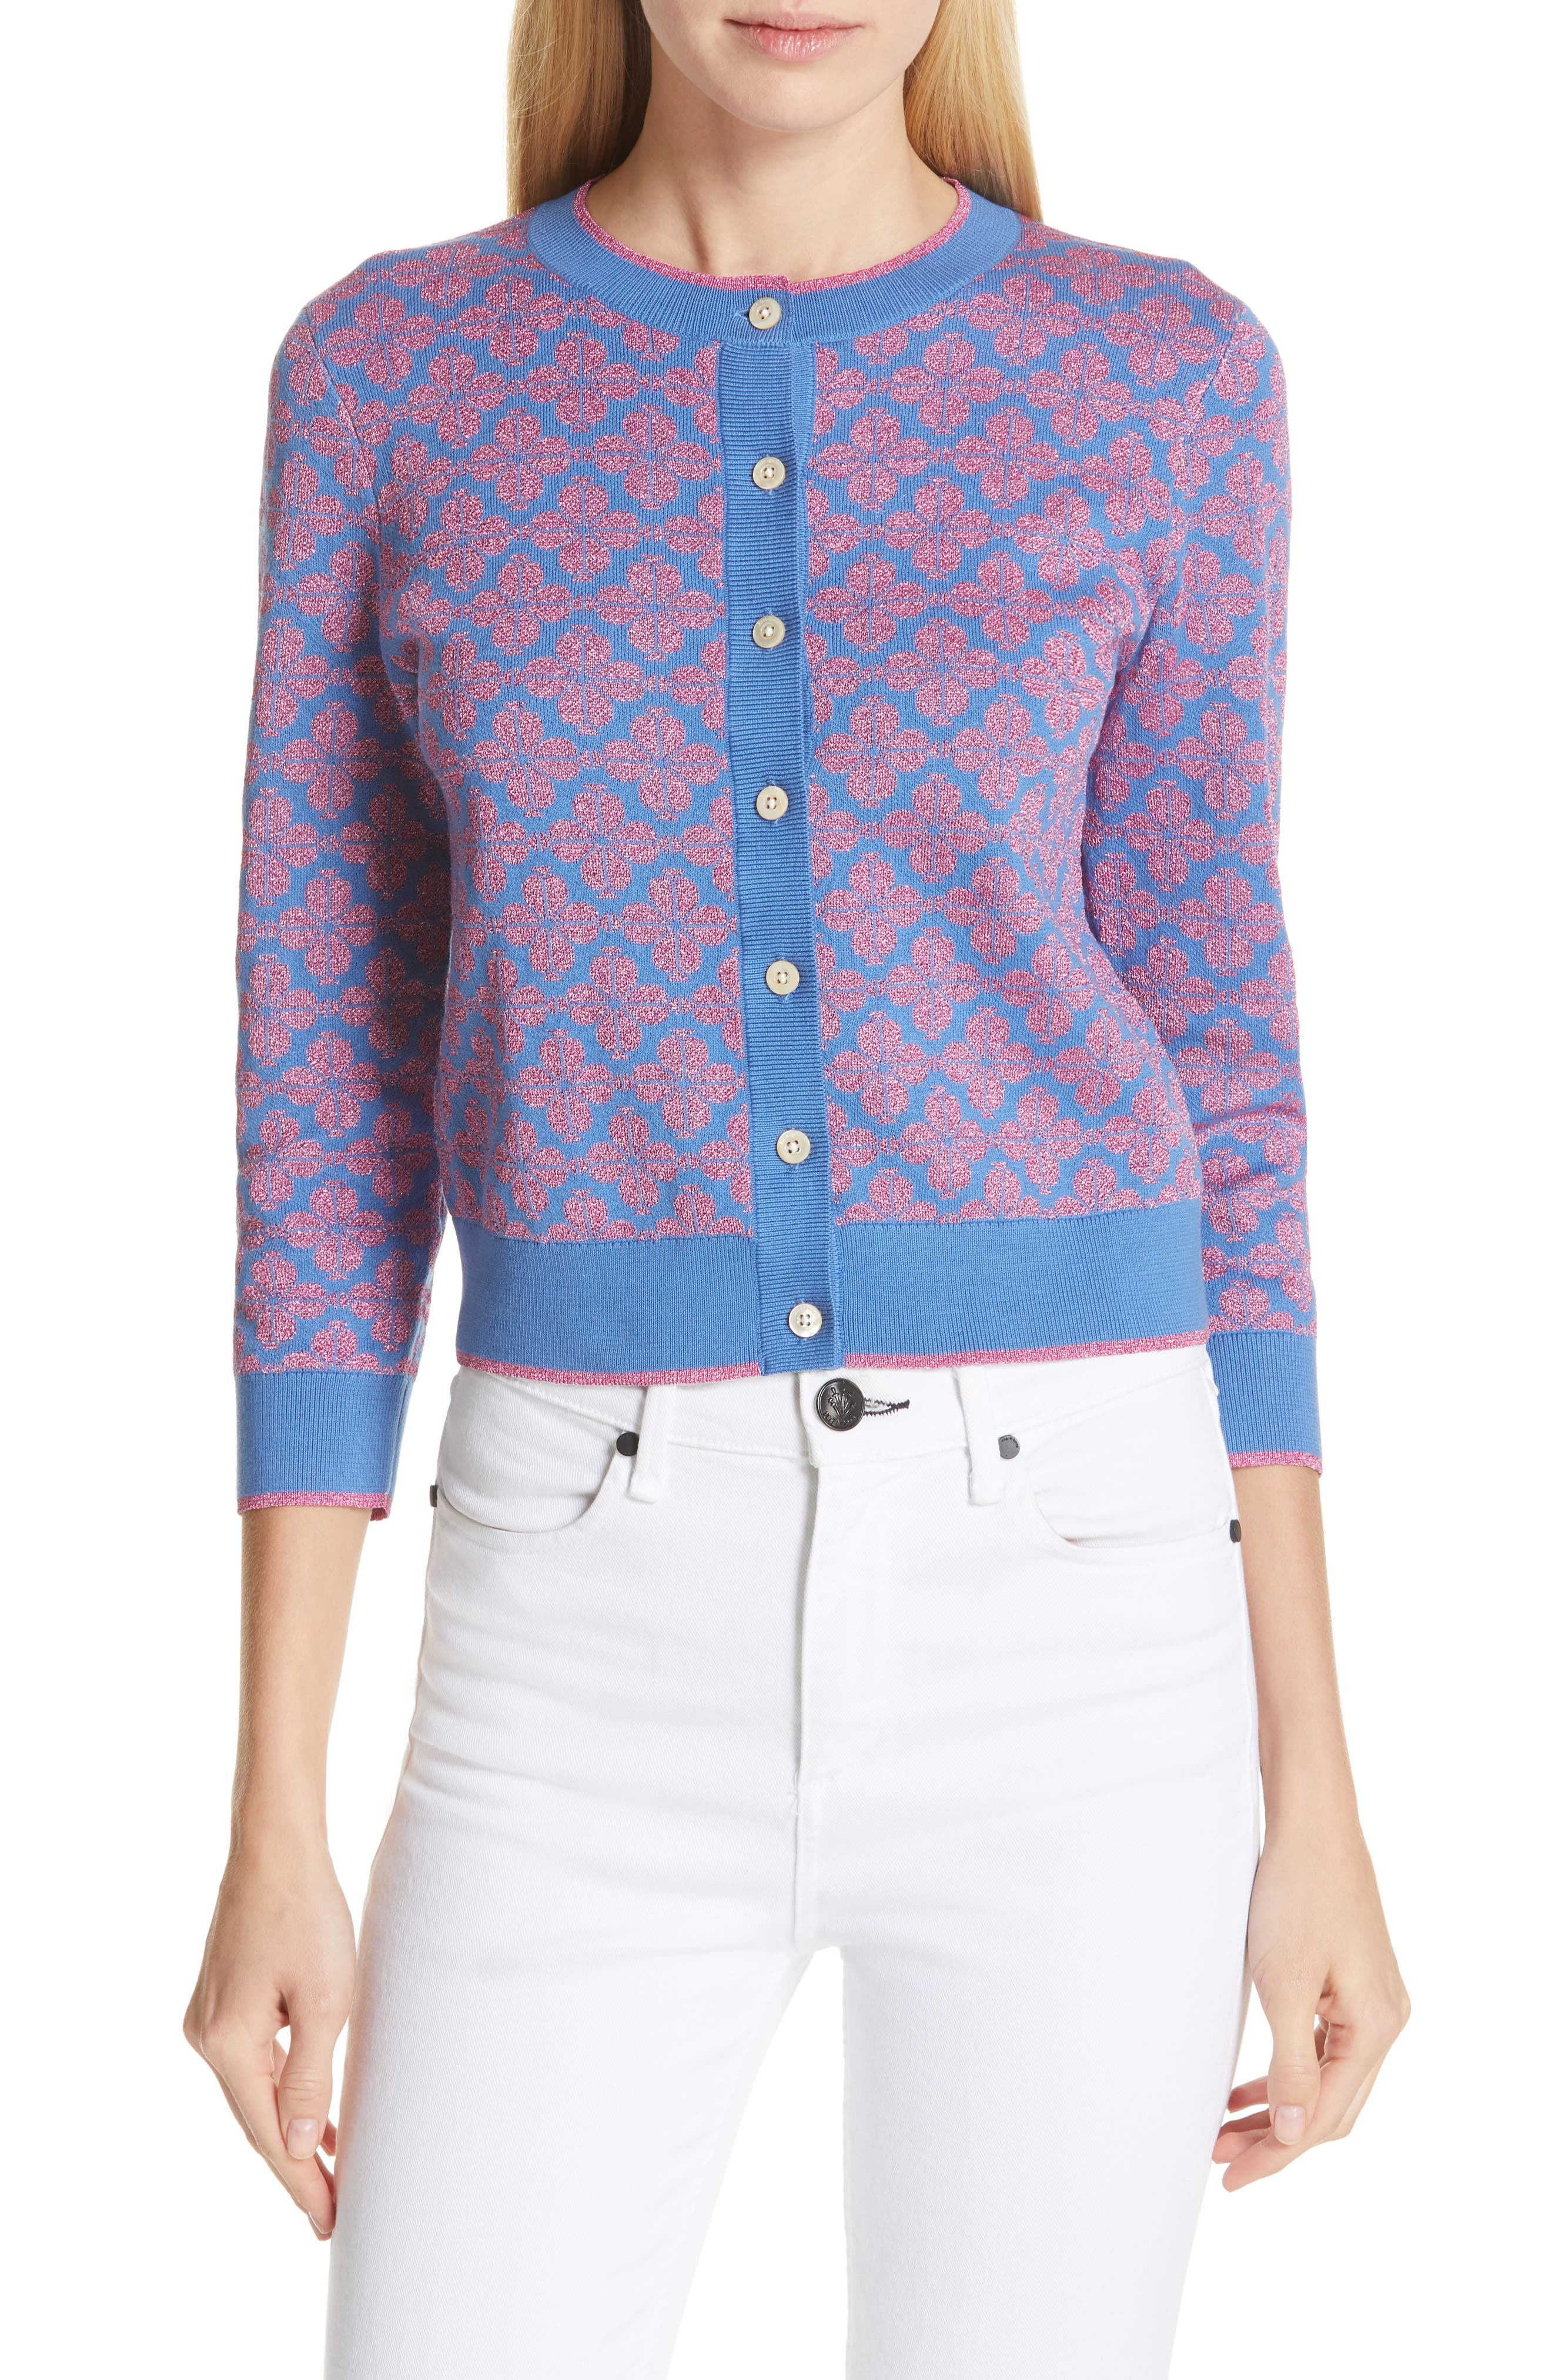 93908fa5f kate spade new york Women s Sweaters Clothing